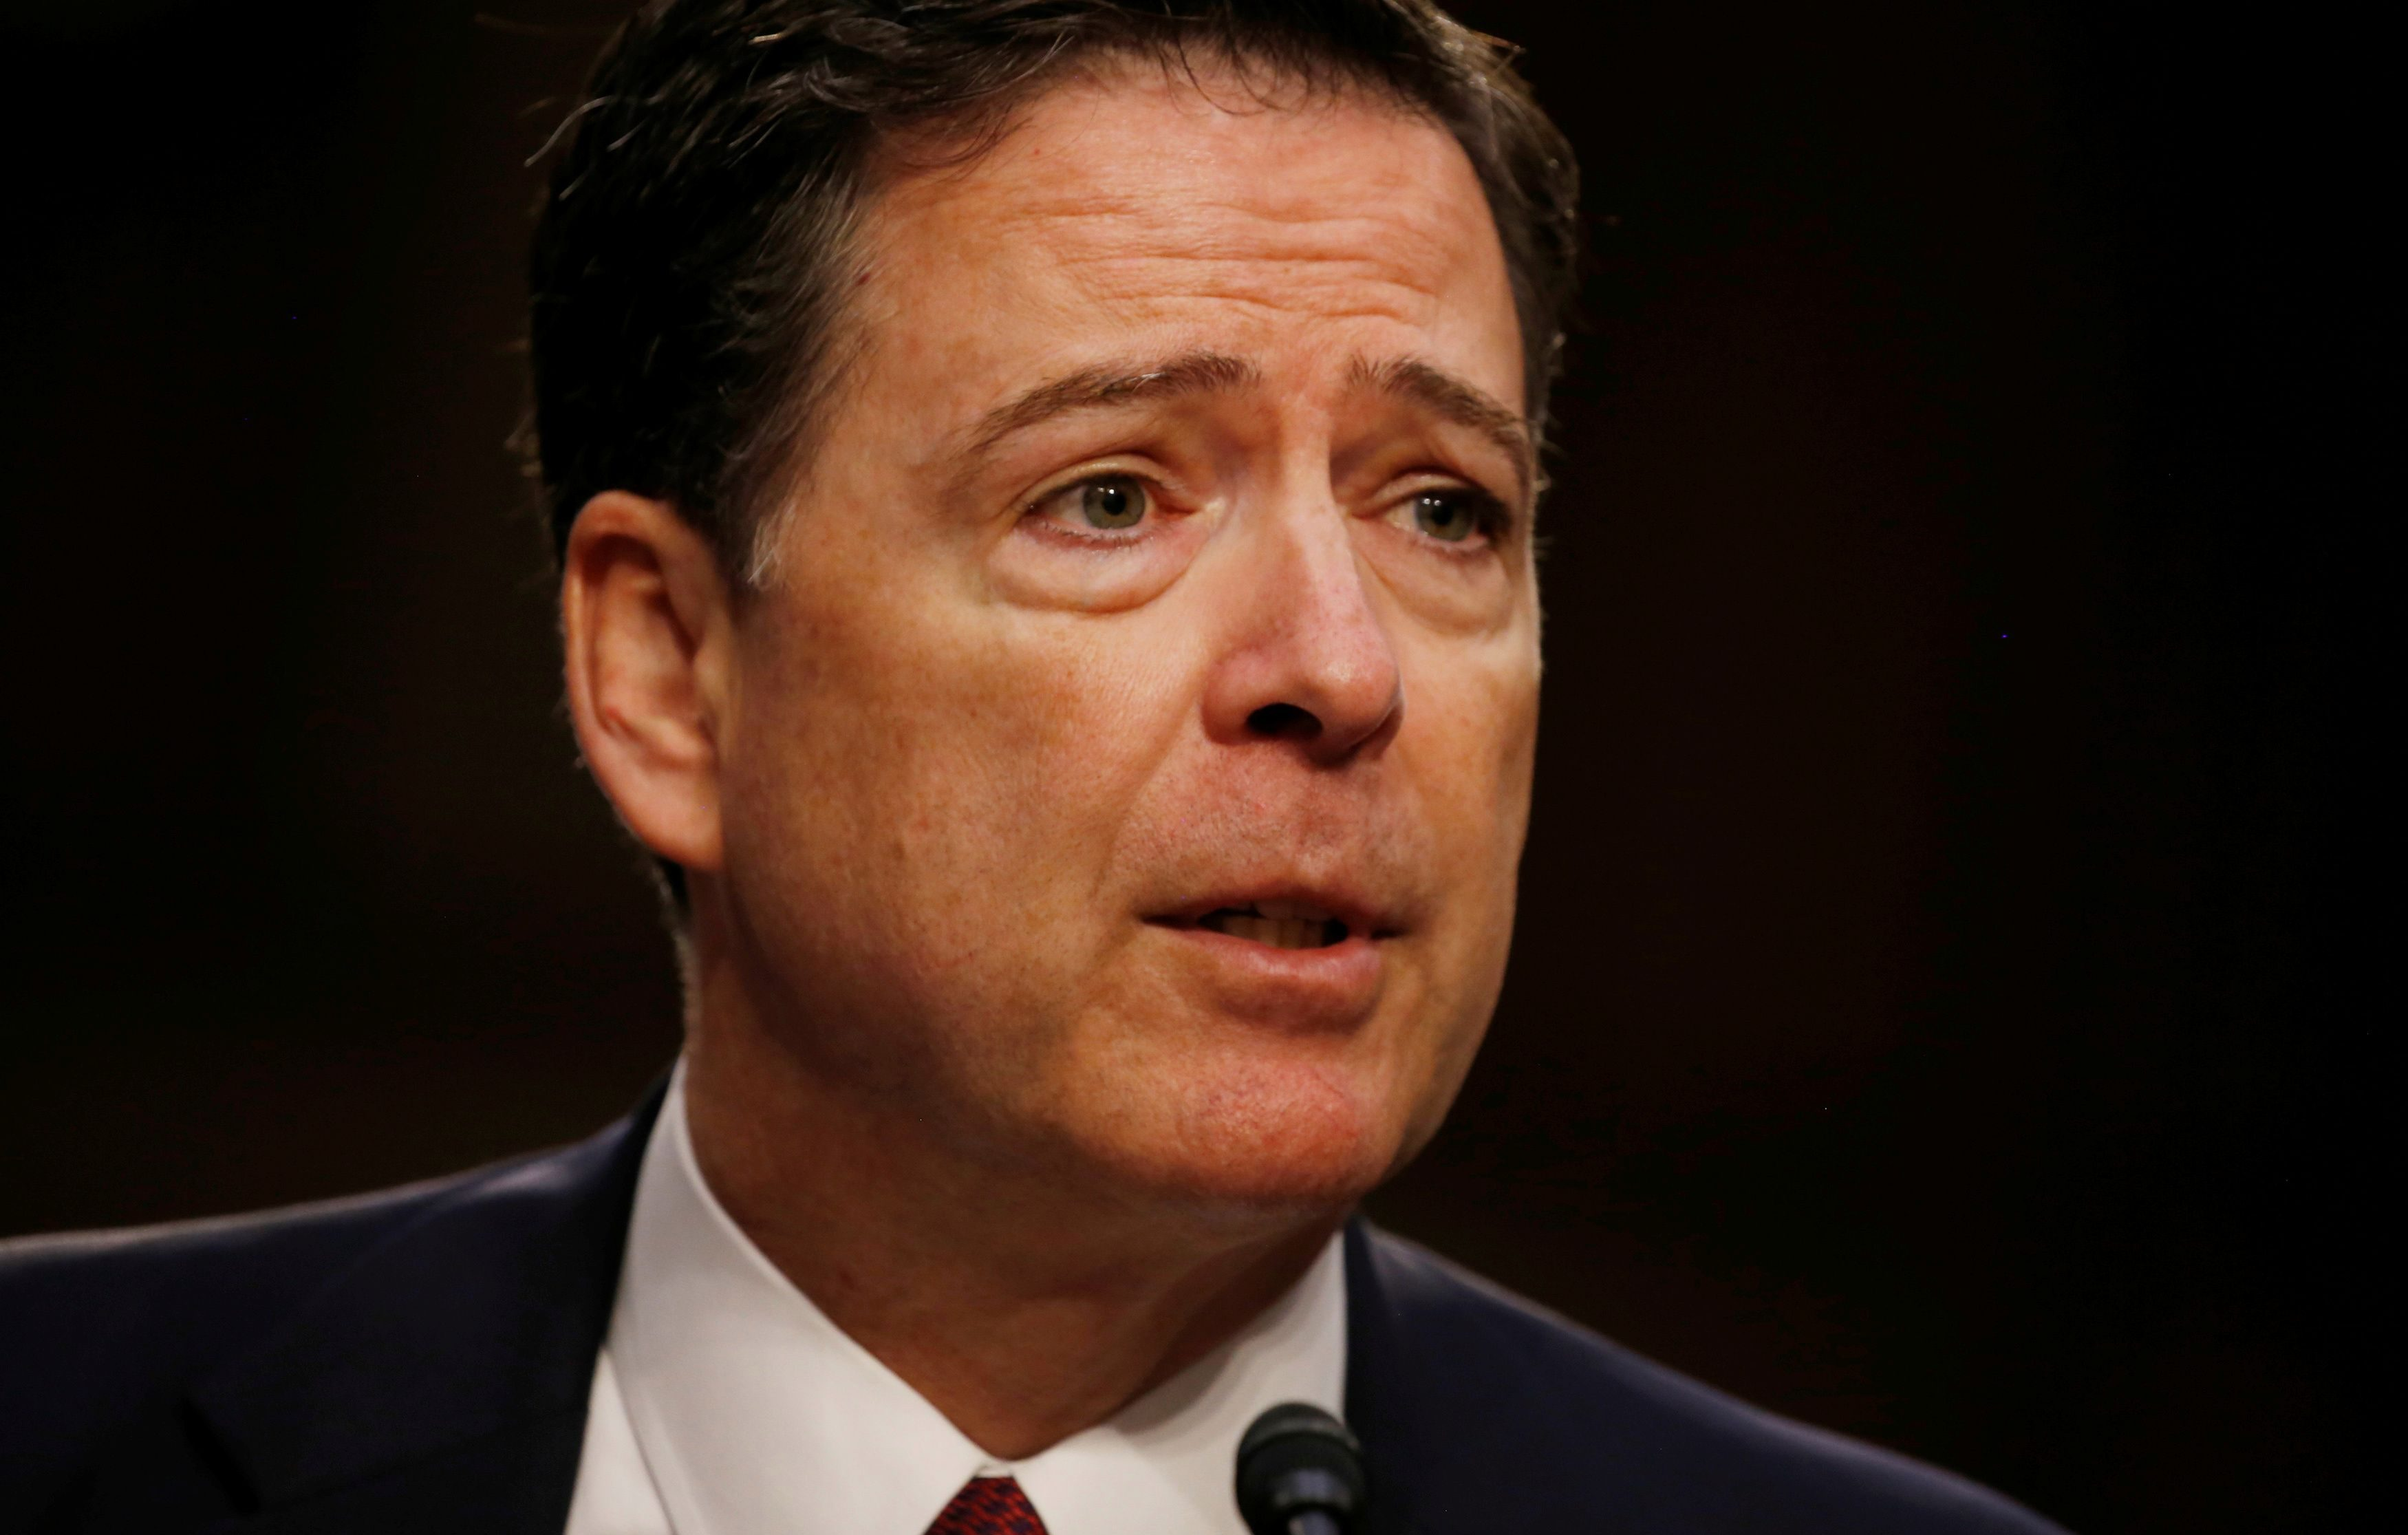 Comey says Republican Party 'has left me and many others'